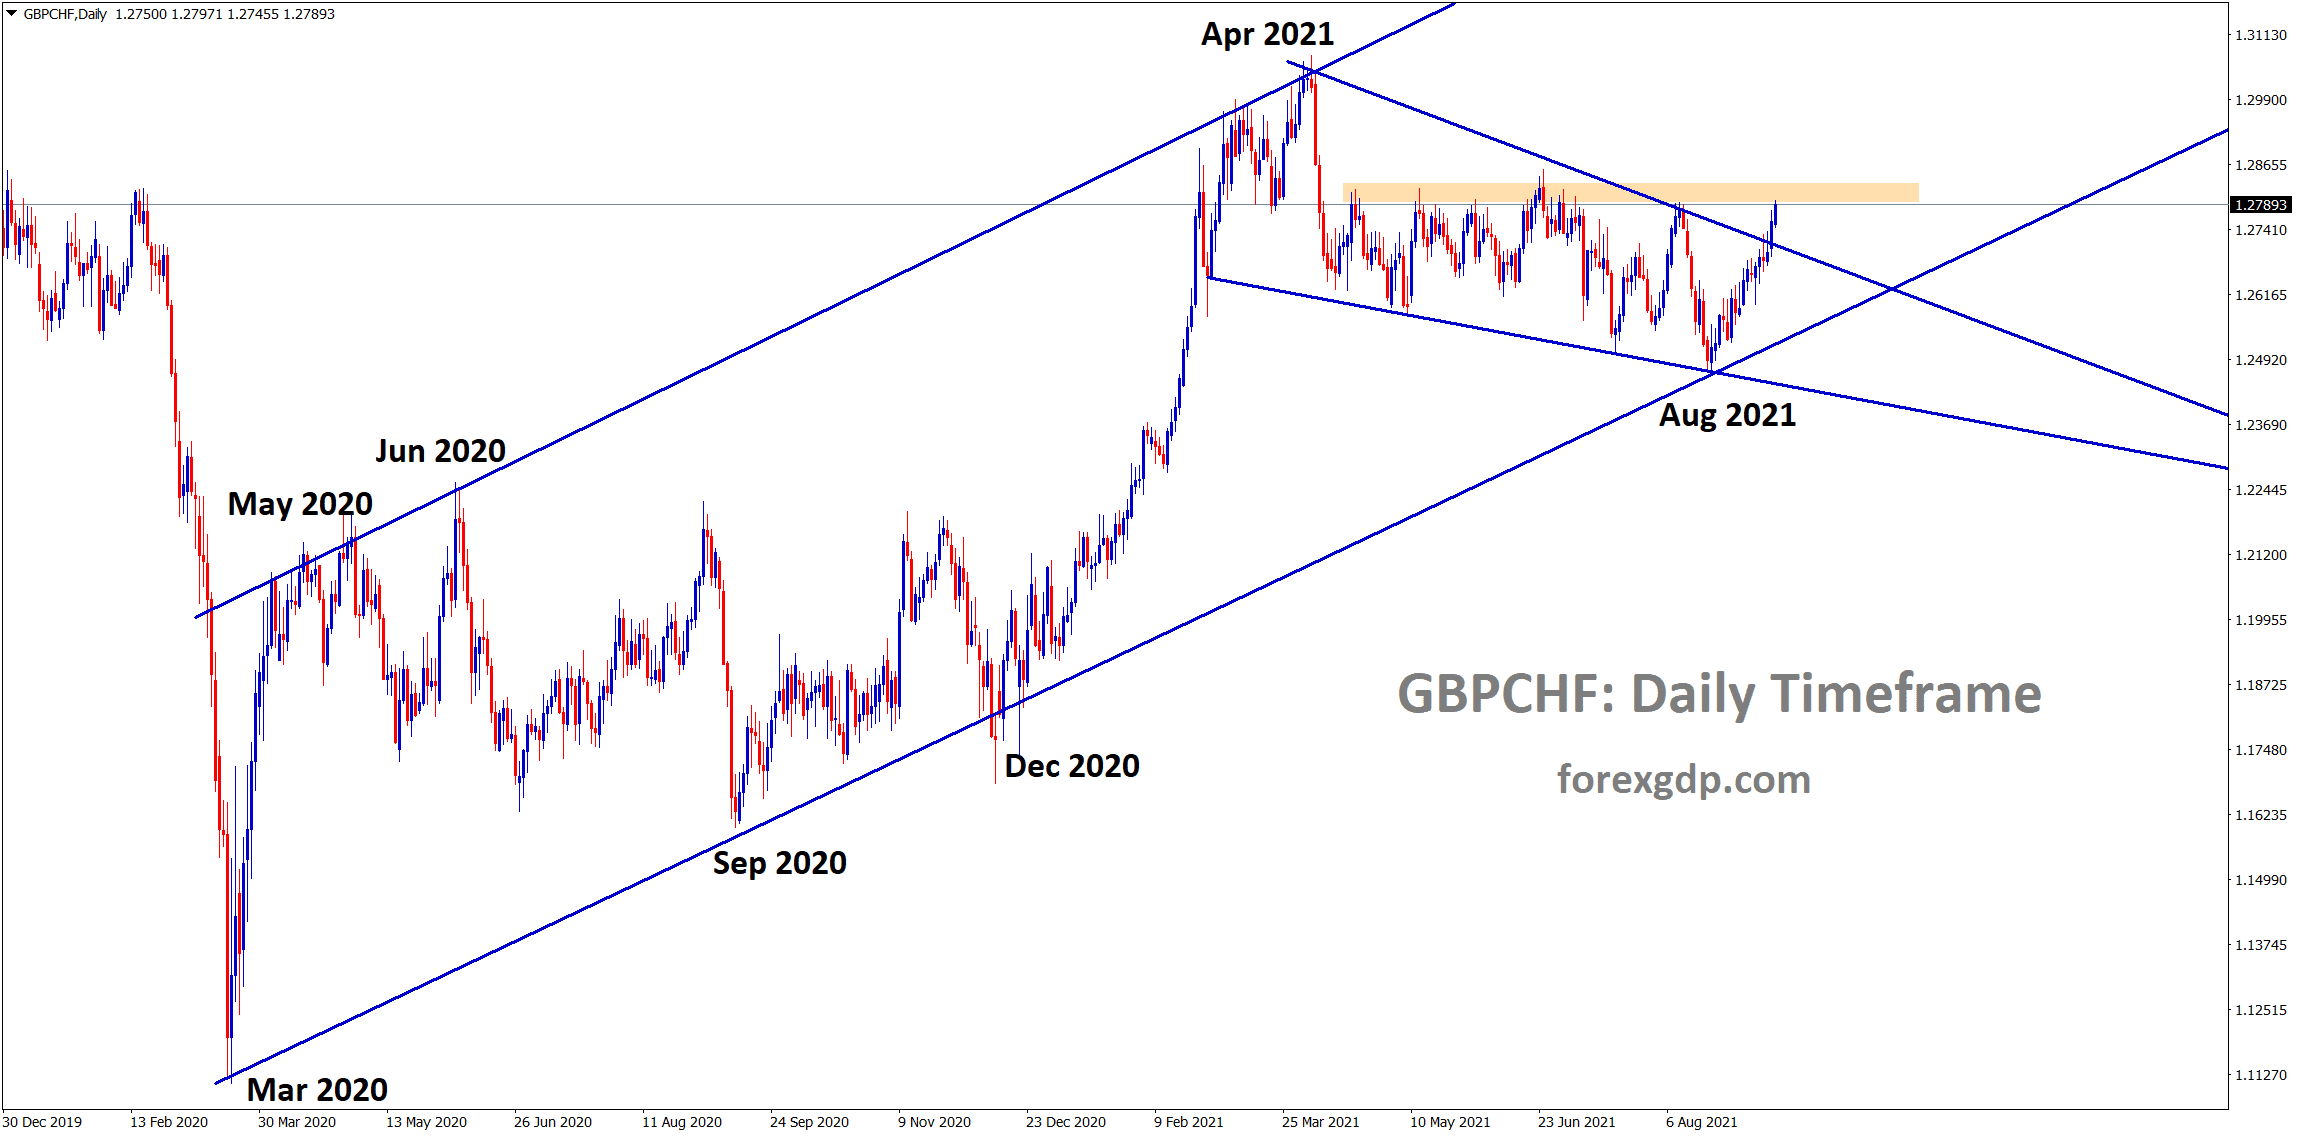 GBPCHF has broken the top level of the falling wedge and standing now at the horizontal resistance area